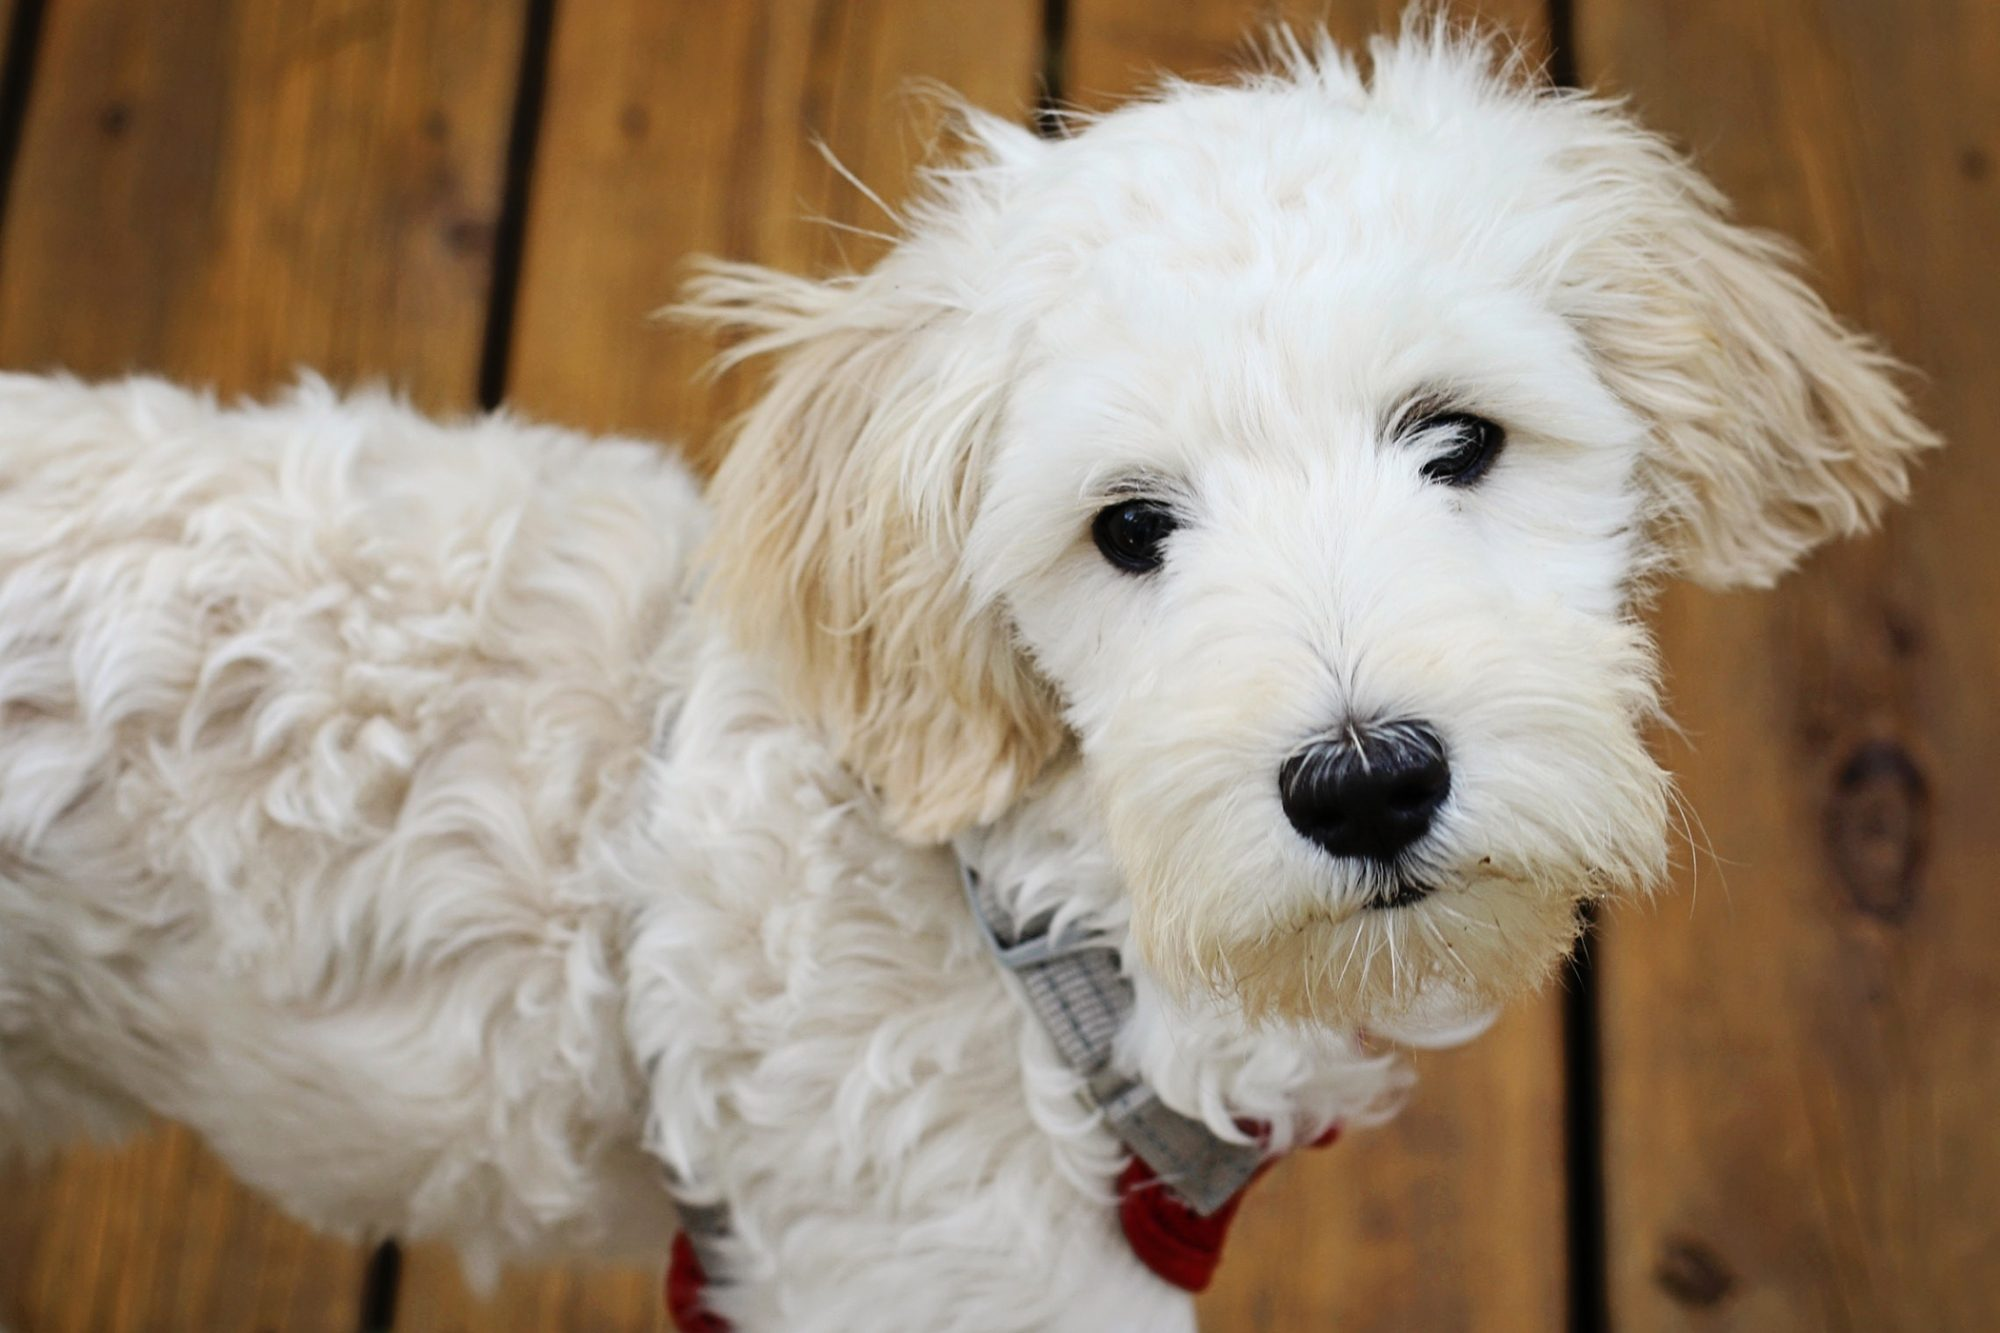 White Sheepadoodle portrait from above with wood floor background